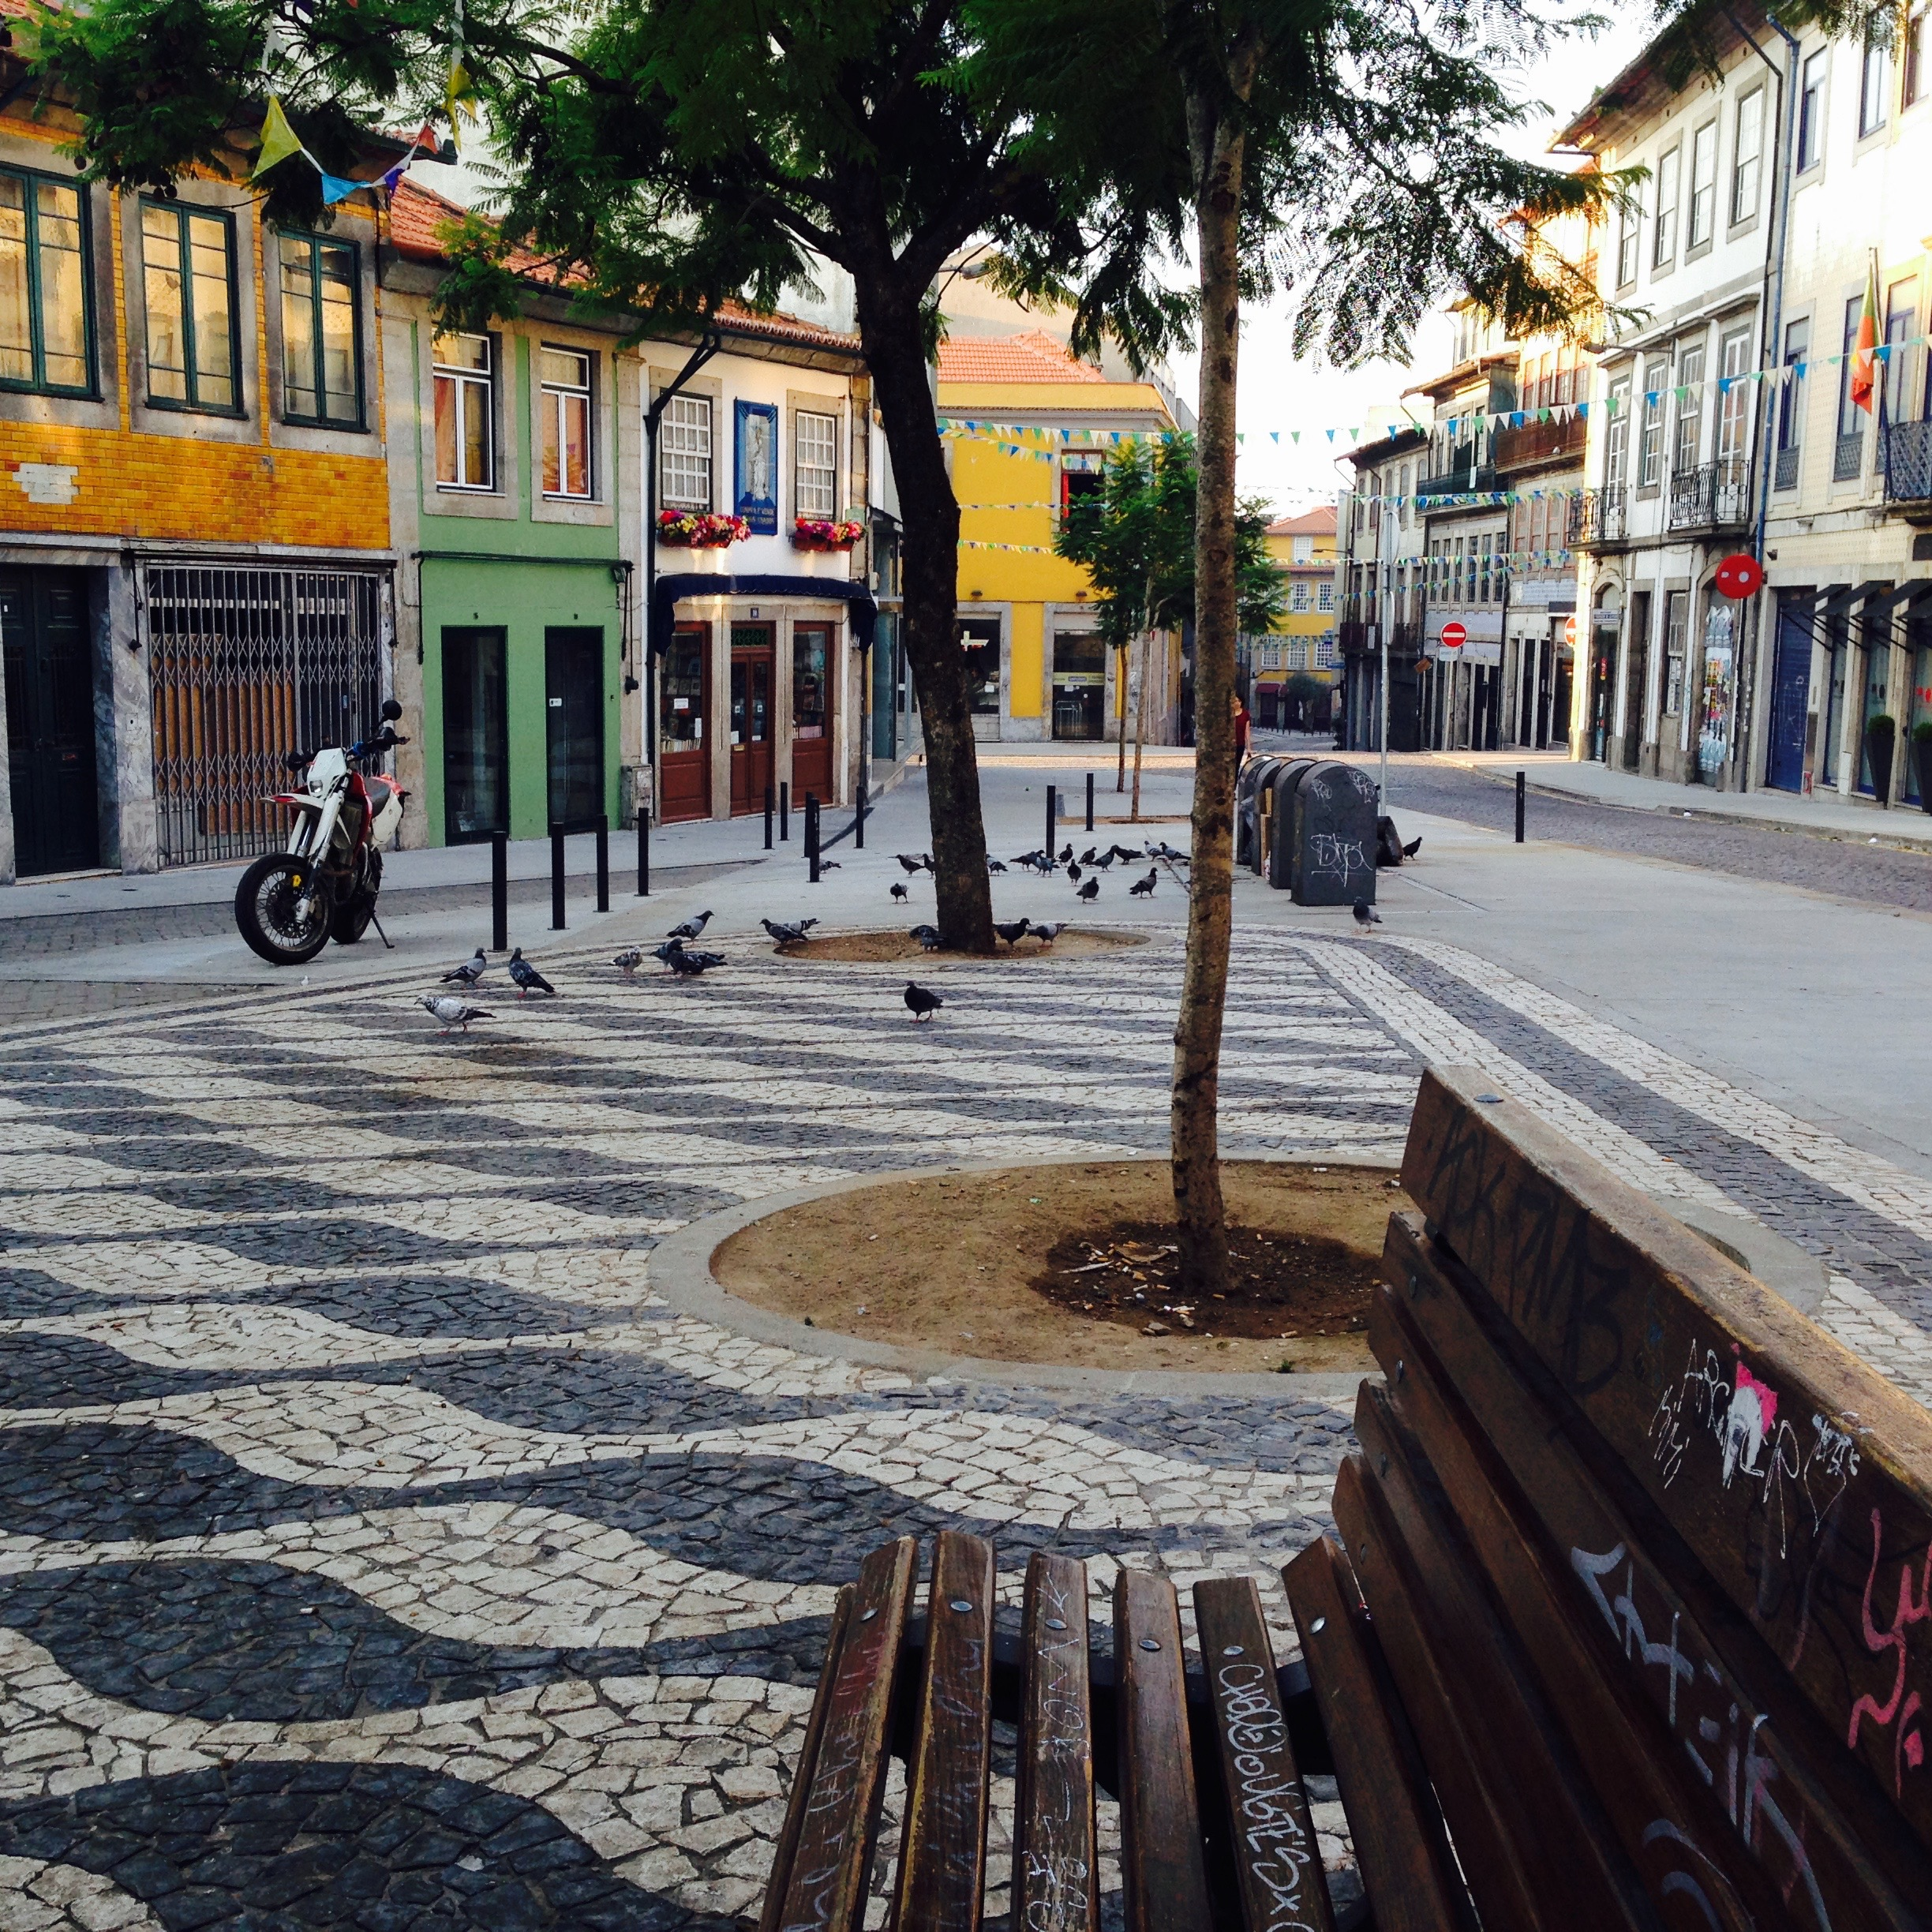 A typical street in Porto, their new adopted home.